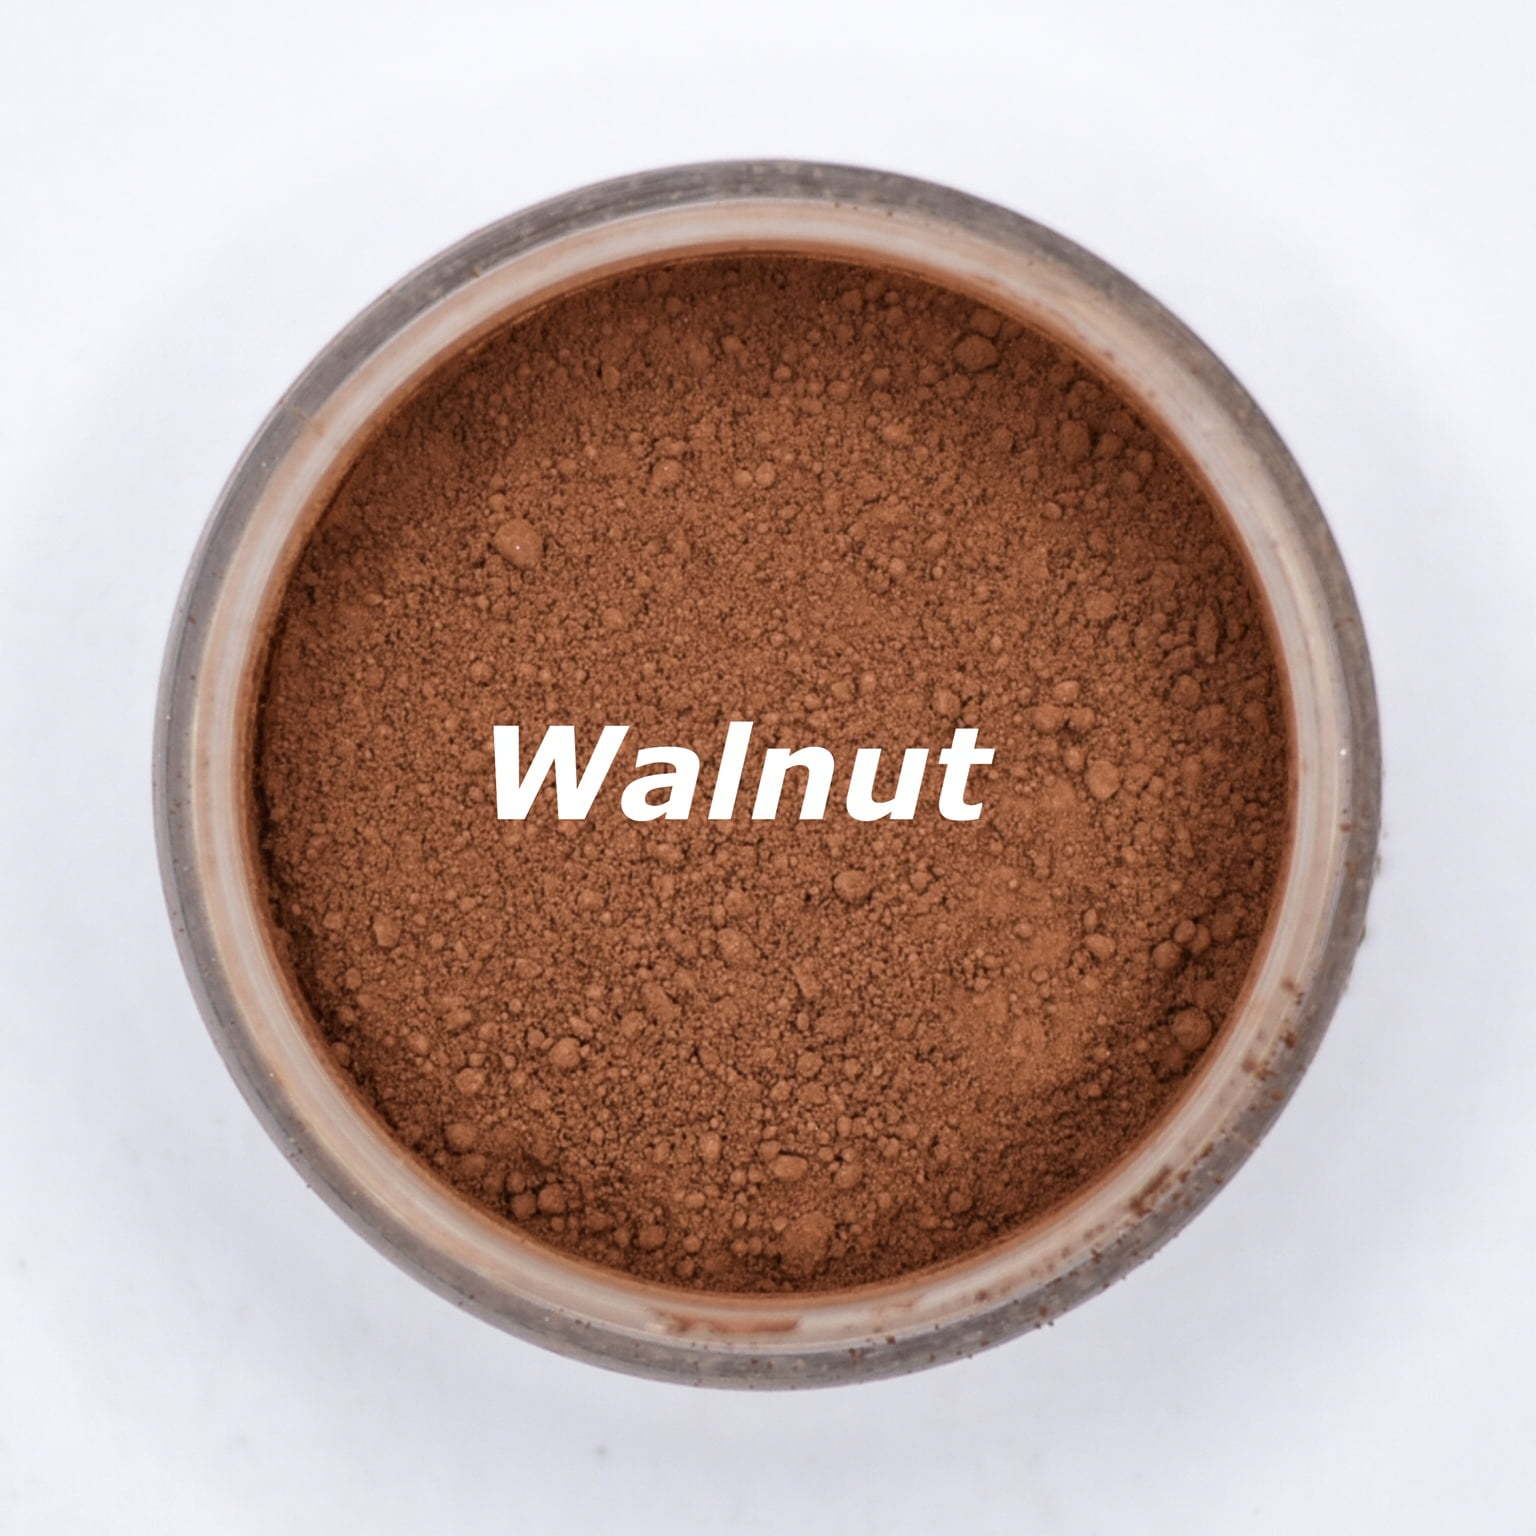 walnut foundation shade